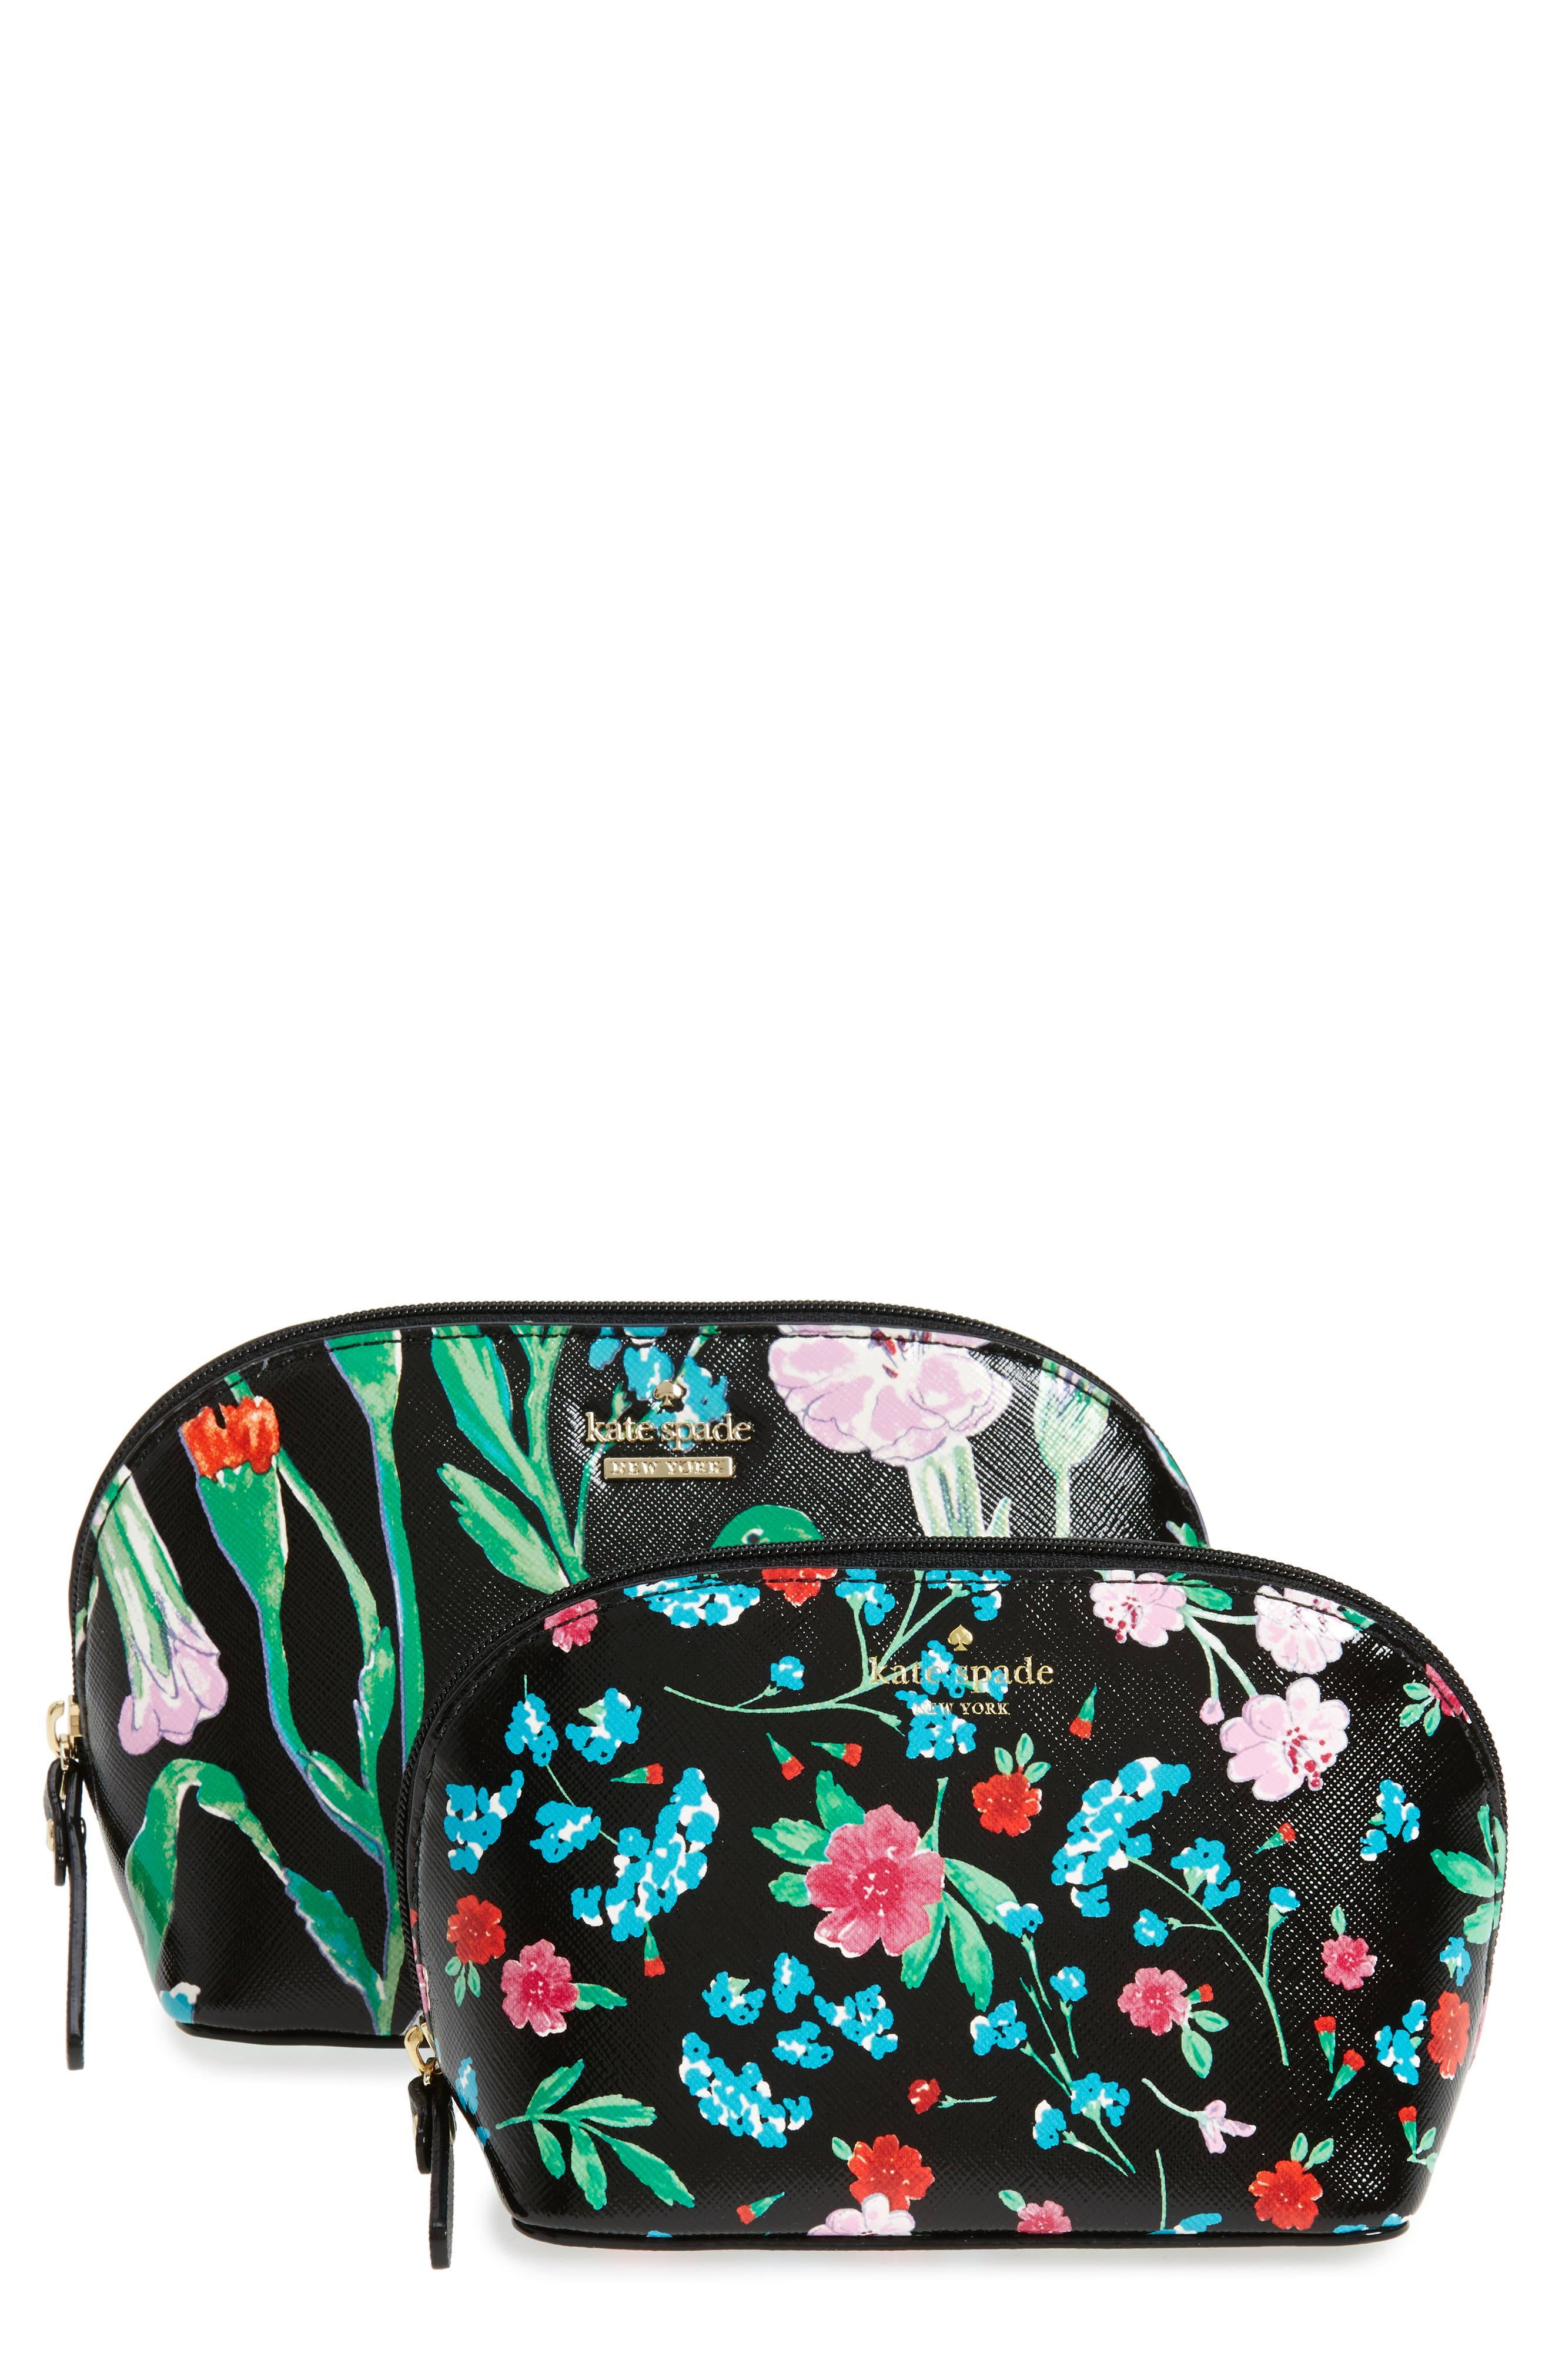 kate spade new york cameron st. jardin abalene set of 2 cosmetic cases